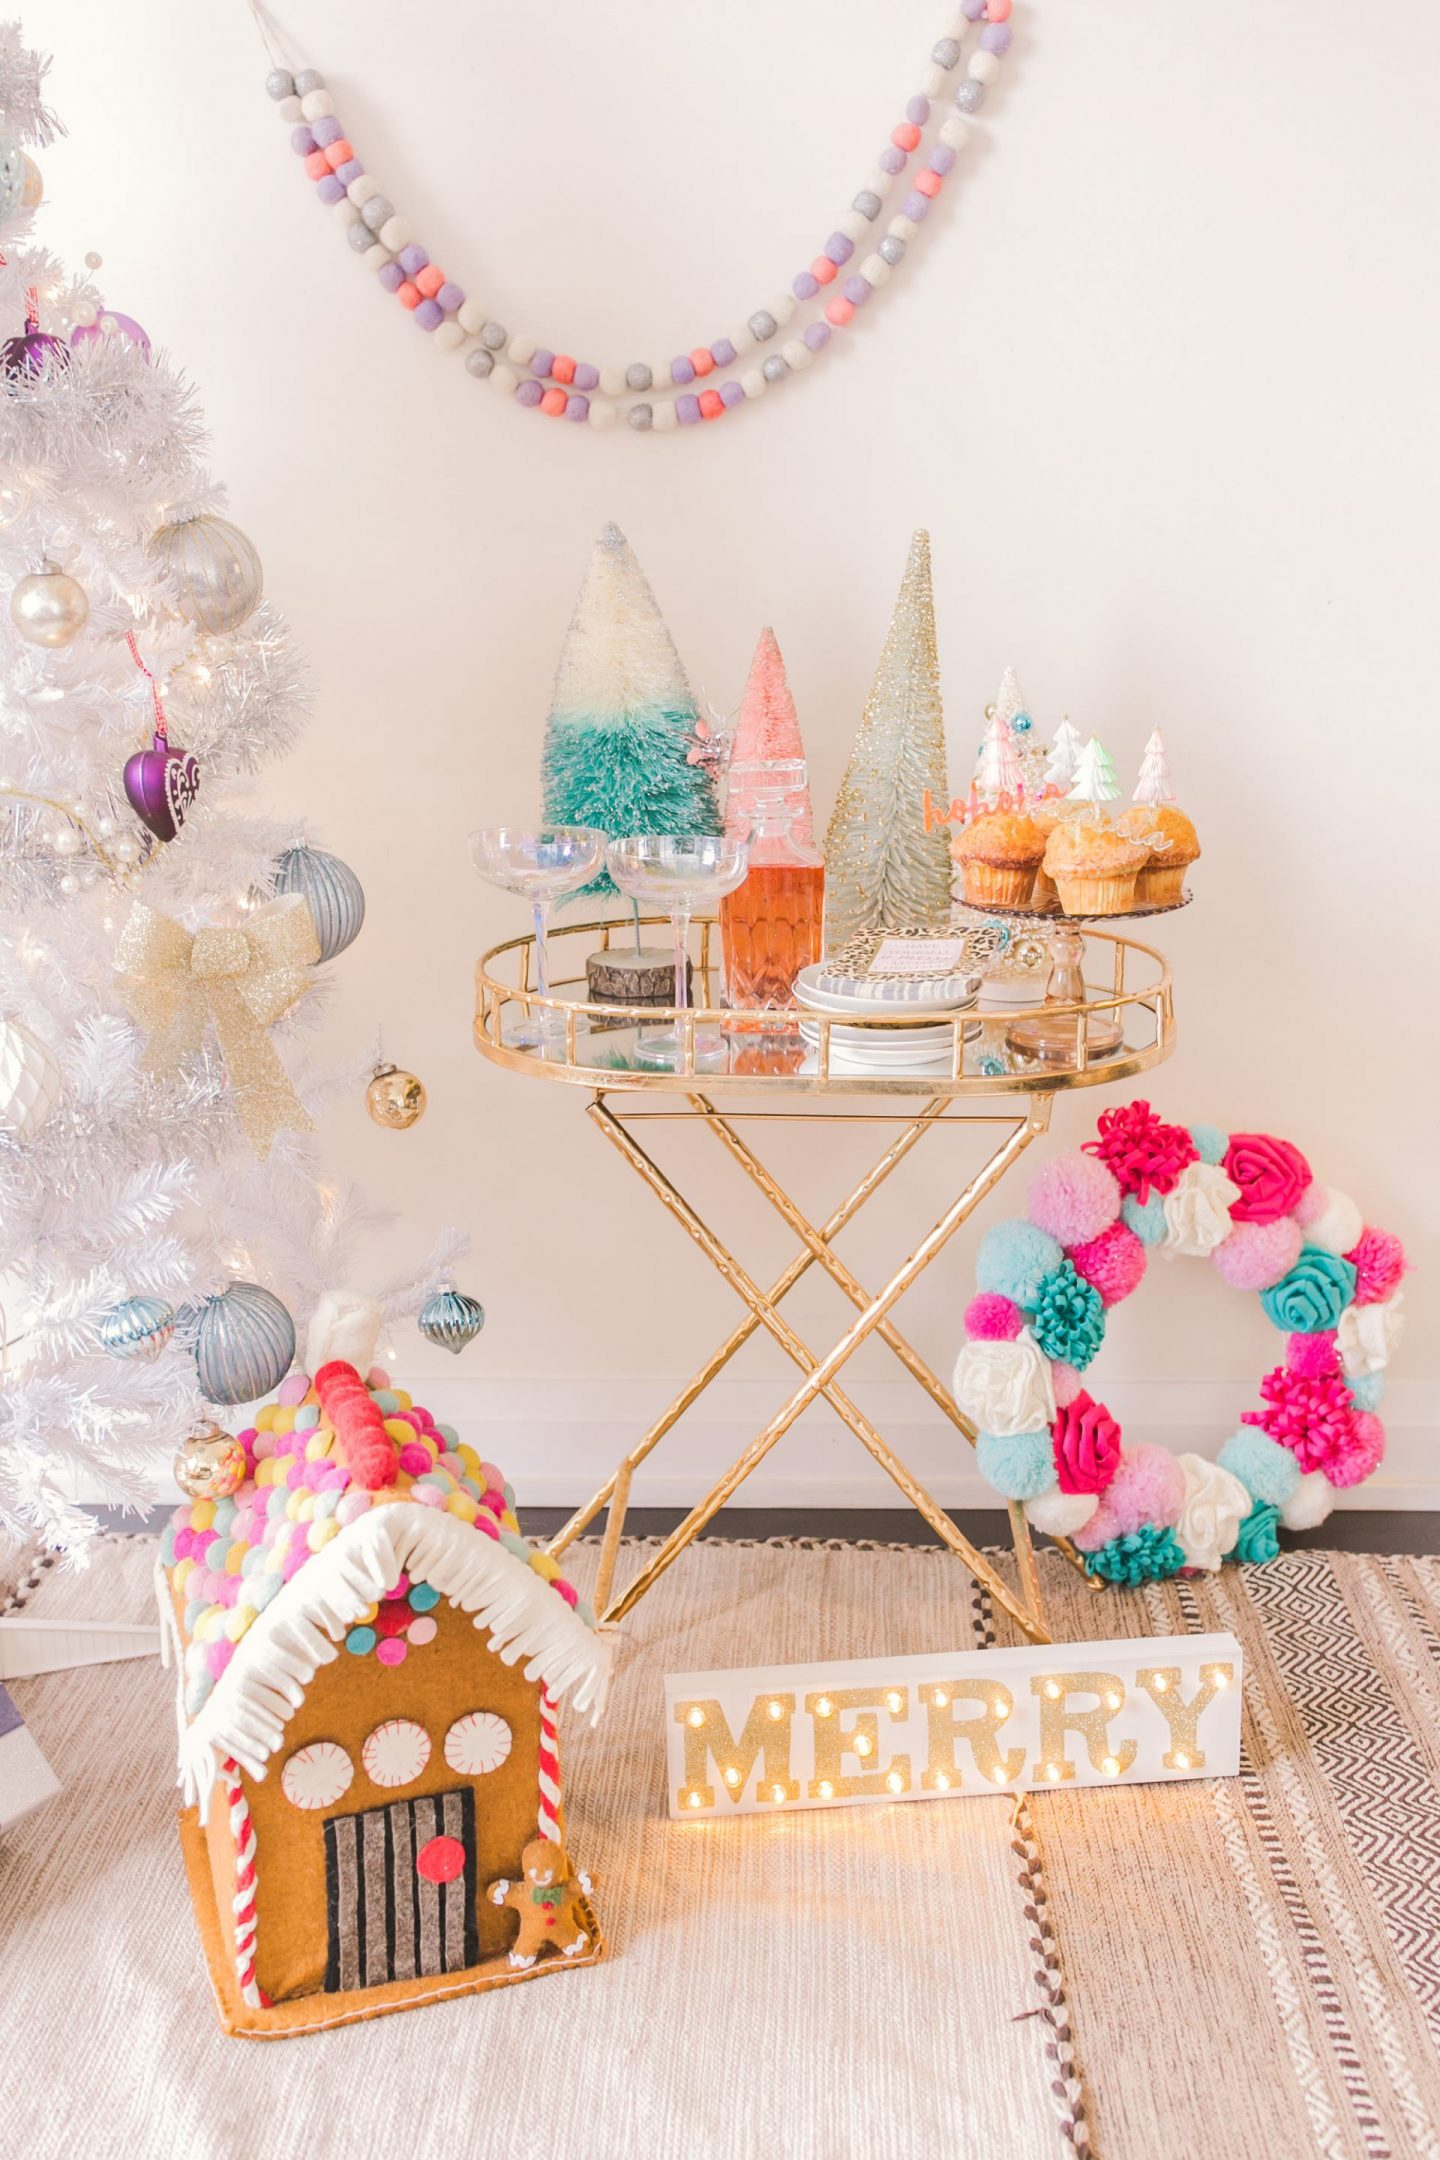 5 Easy Tips for Styling Your Holiday Bar Cart Styling - Bijuleni